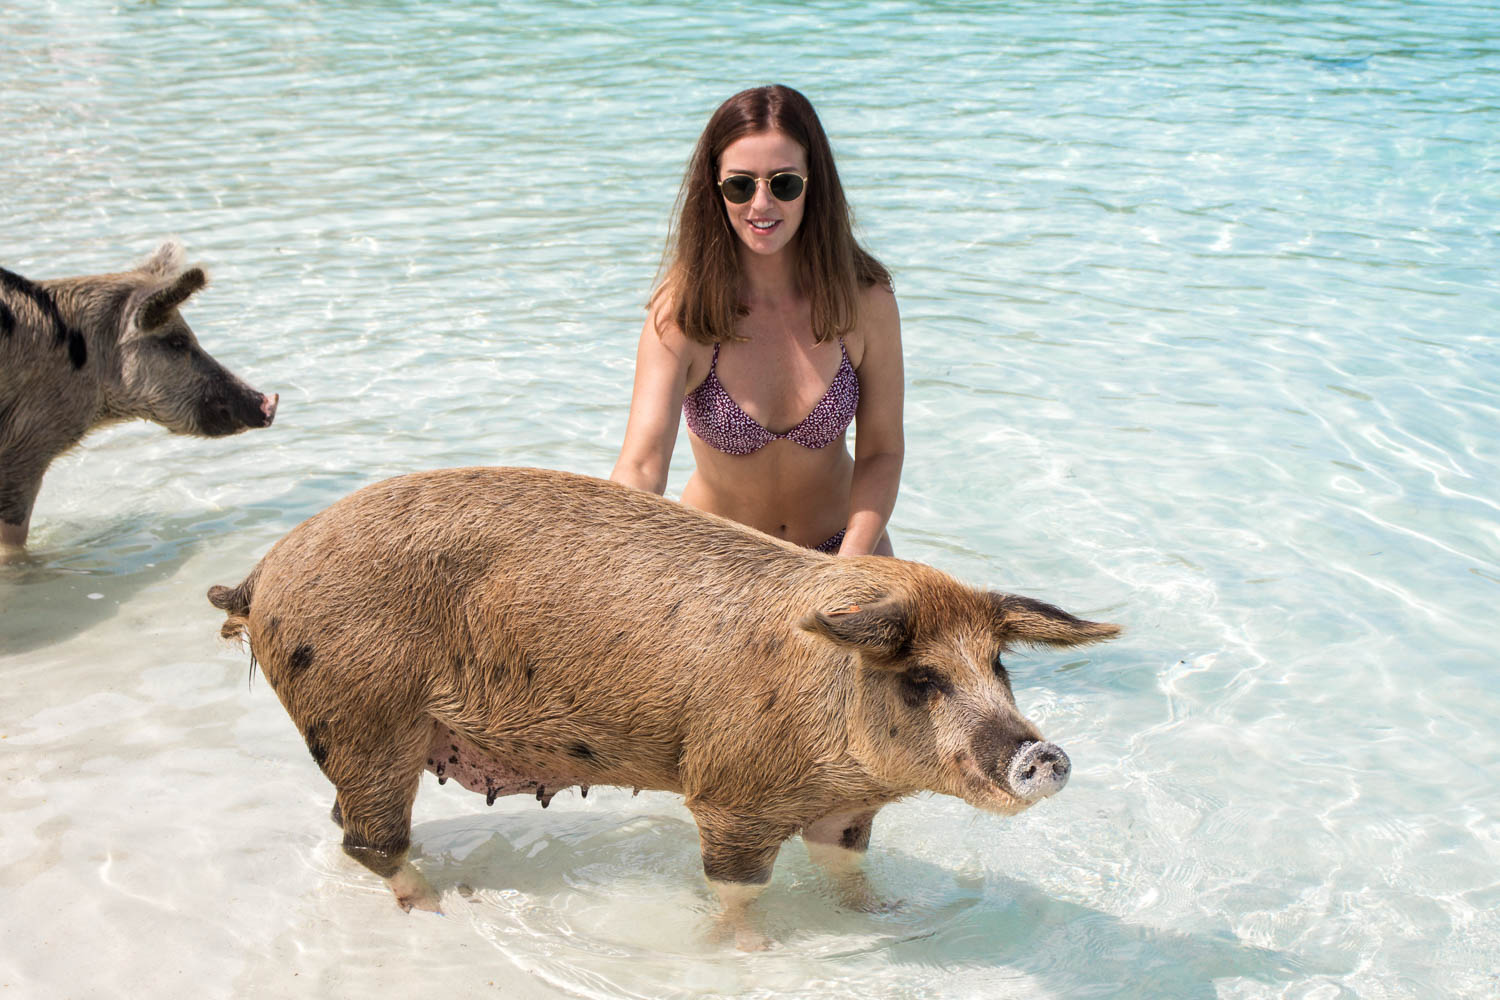 Pig Beach is home to the Bahamas swimming pigs. Over 25 Exuma pigs live on Pig Island (Big Major Cay).